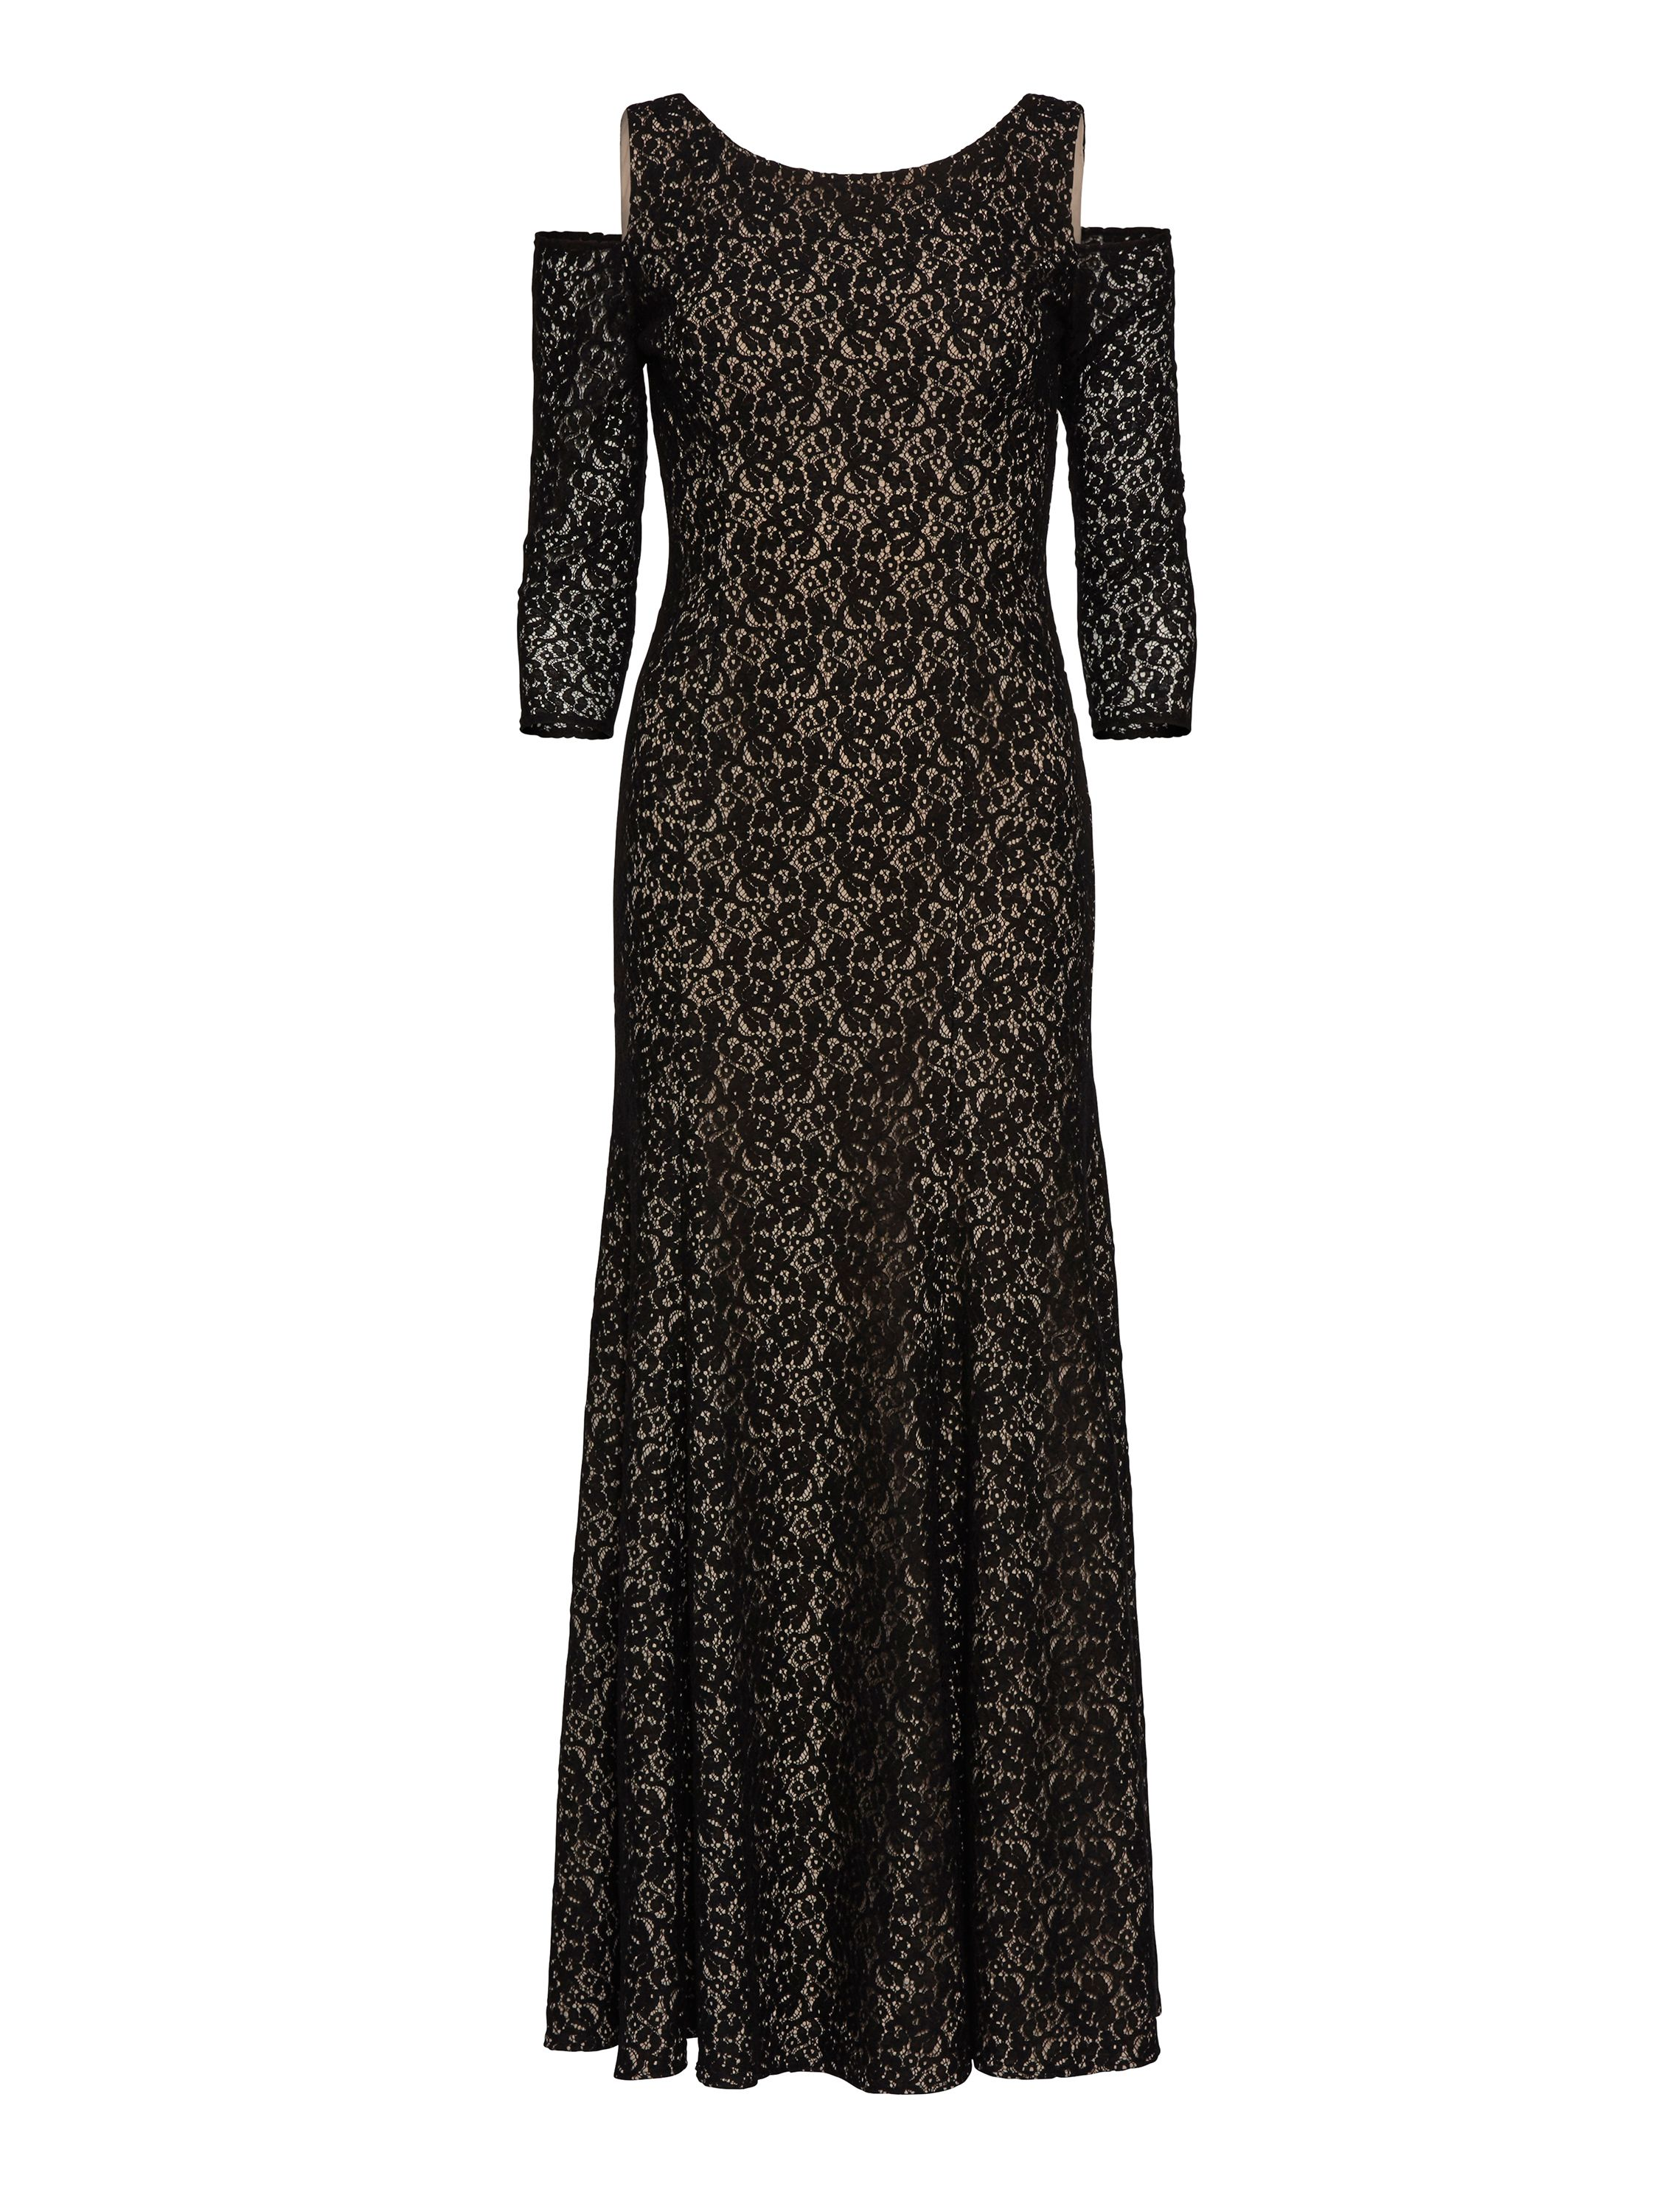 Gina Bacconi Lace Maxi Dress With Cutout Shoulder., Black